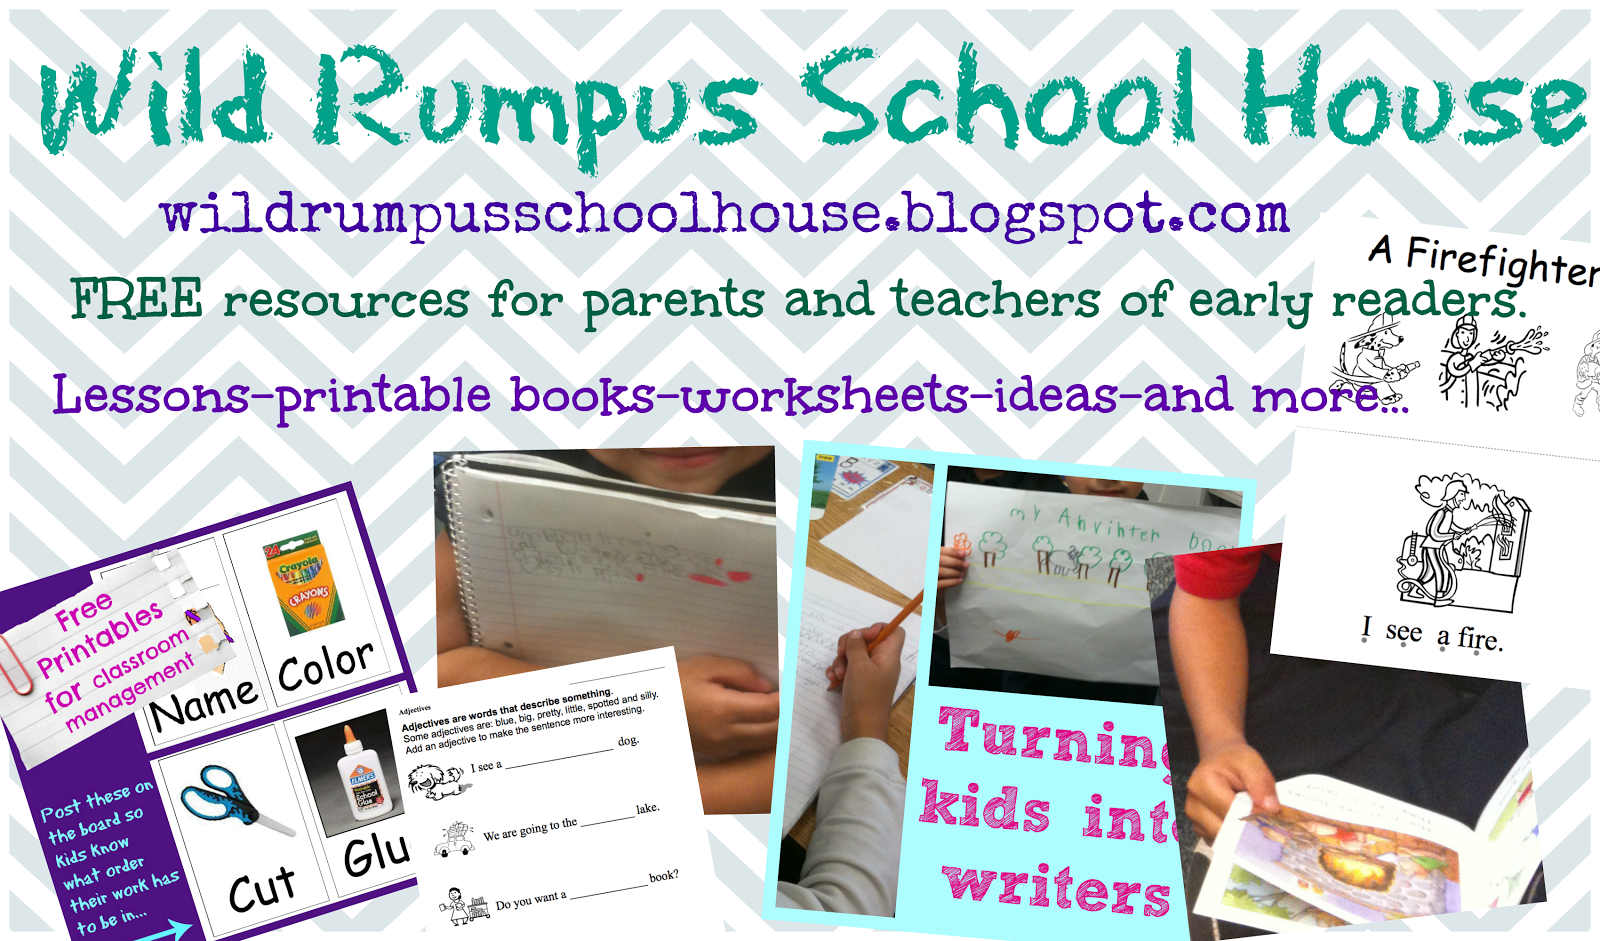 Wild Rumpus School House January